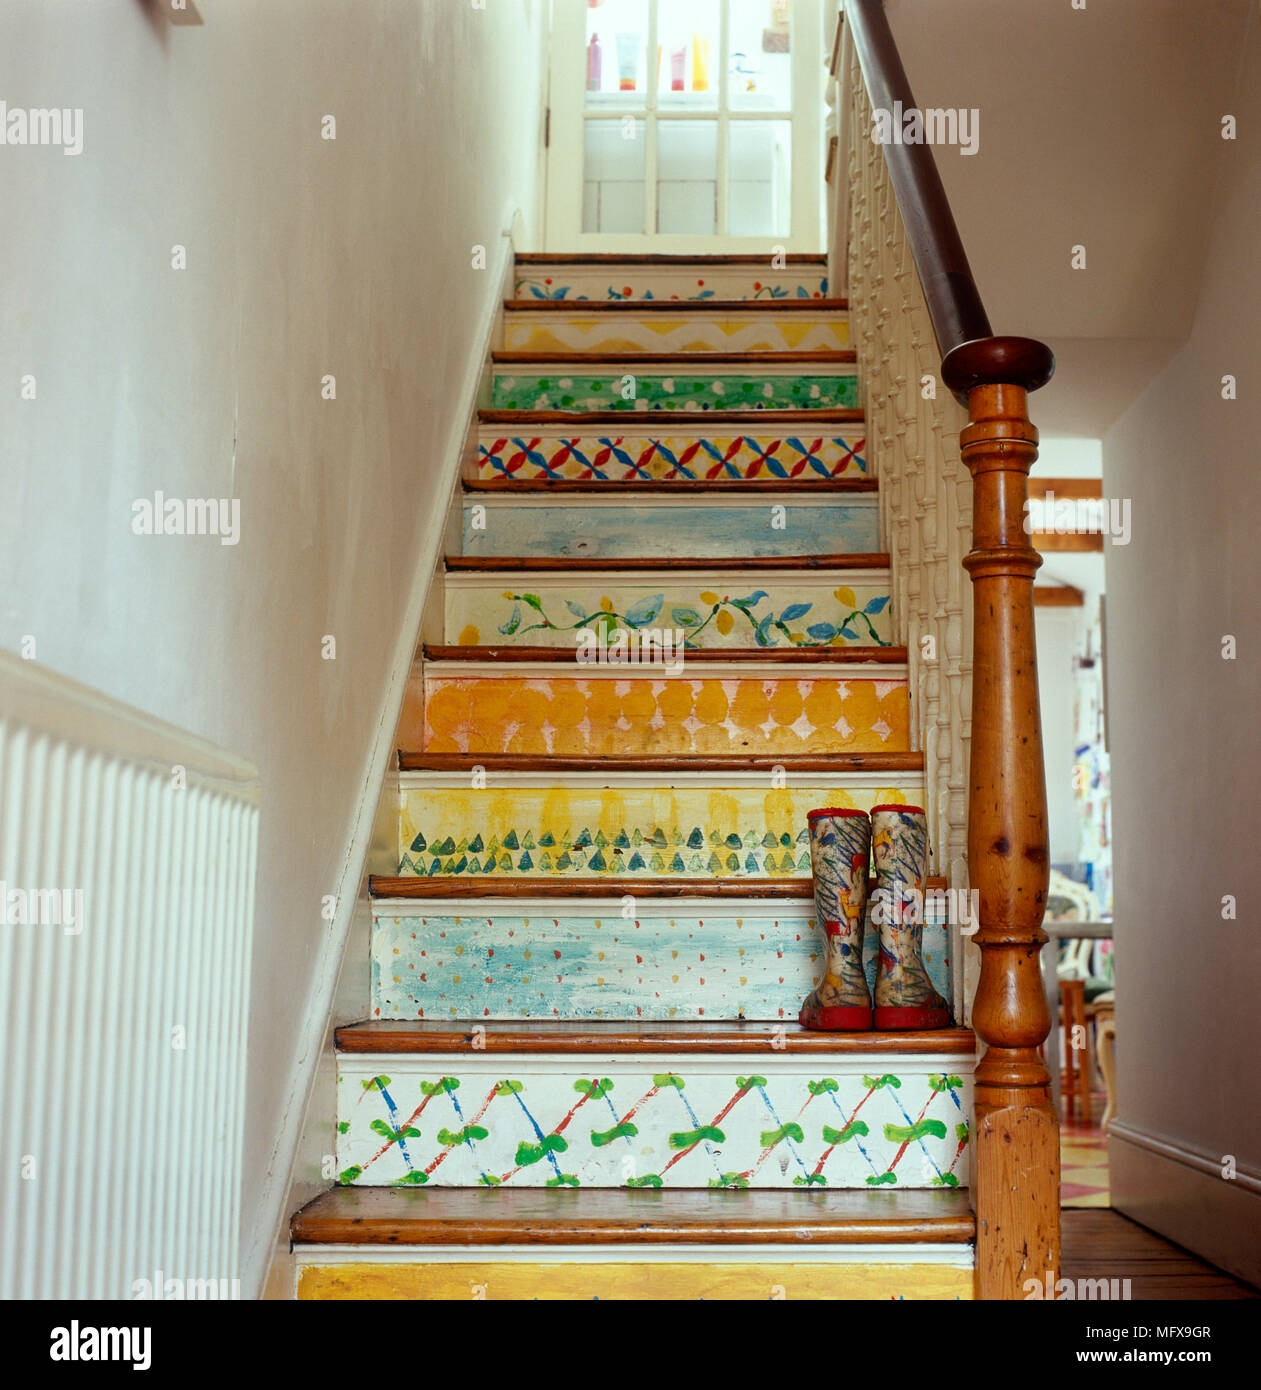 Staircase With Brightly Painted Risers Stock Photo Alamy | Painted Risers On Stairs | Flair | Painting | Stained | Basement | Hardwood